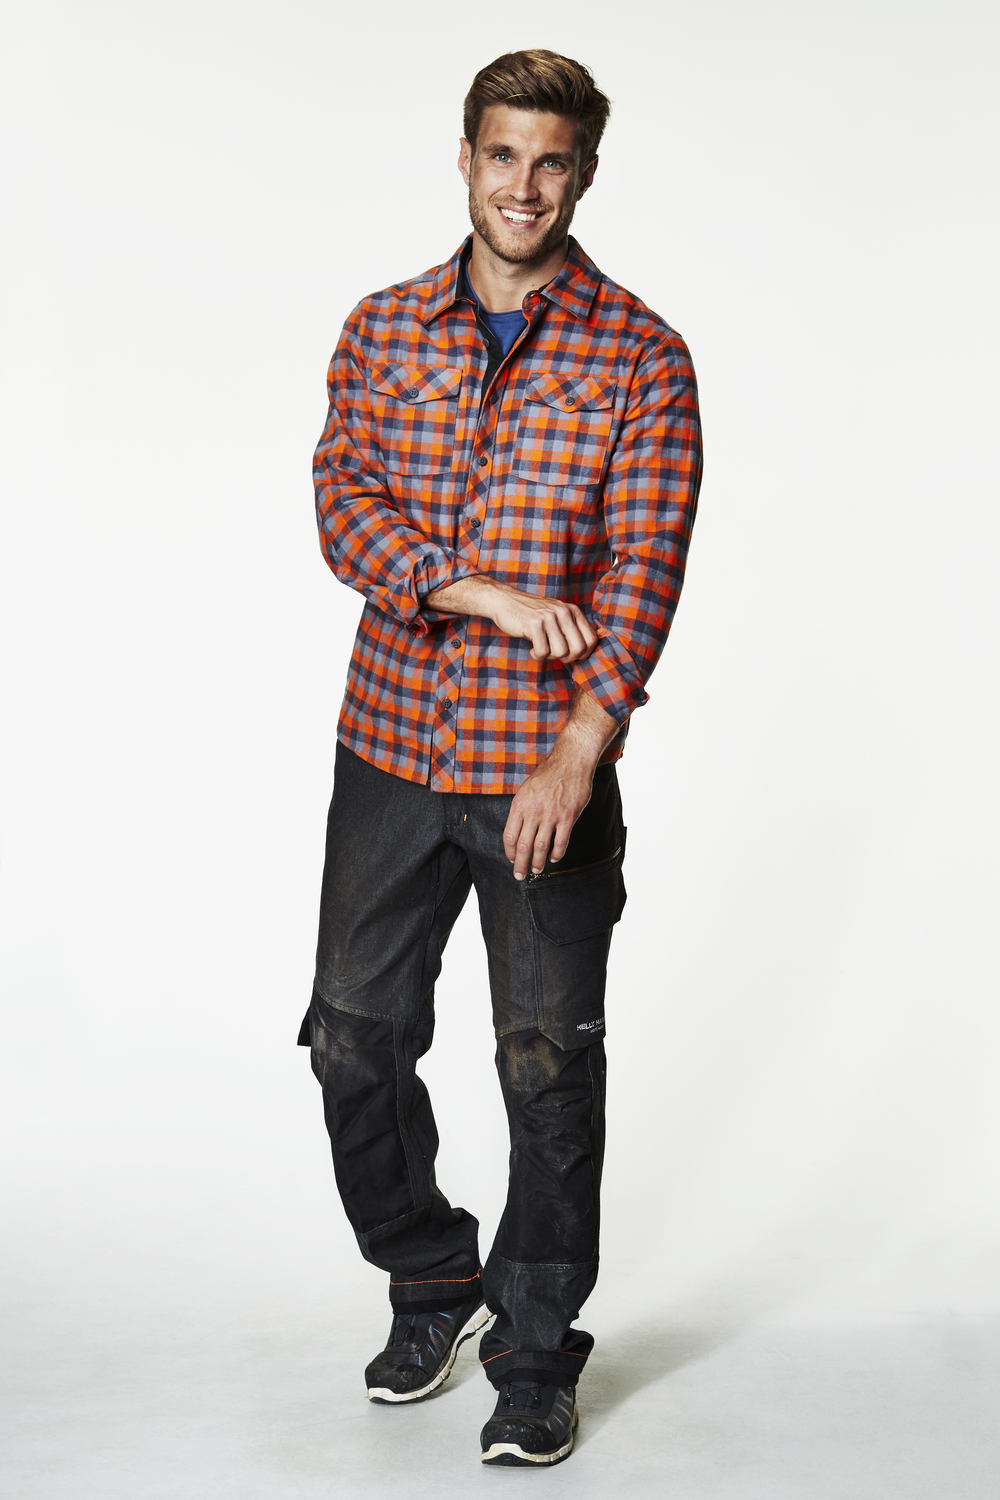 Checkered shirt 22.jpg